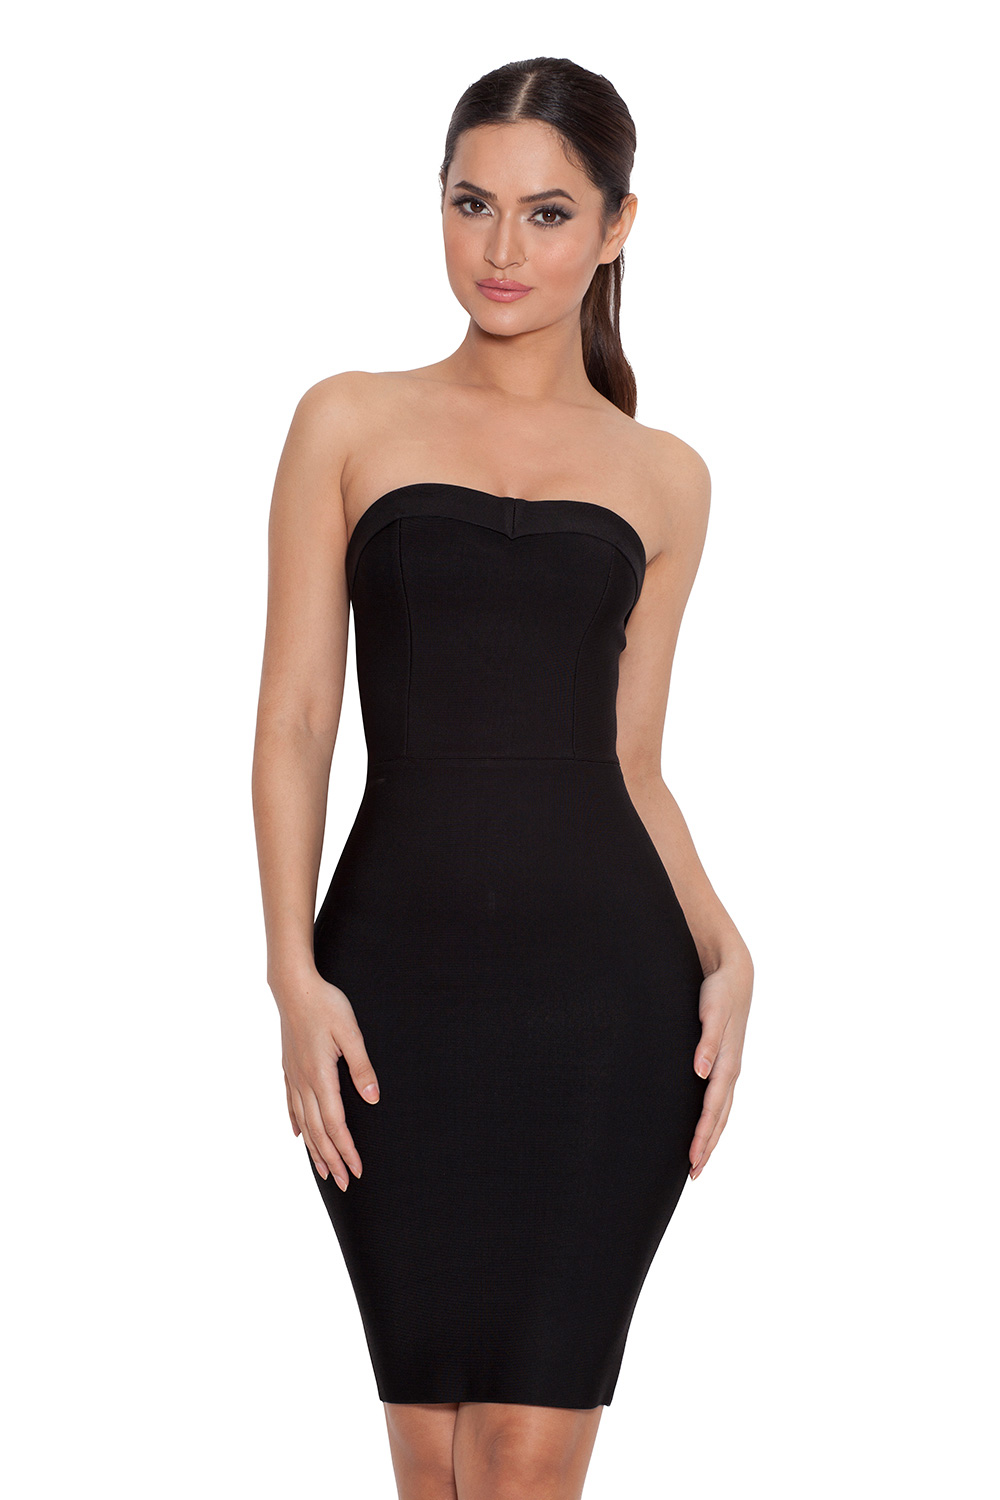 Clothing : Bandage Dresses : 'Vanna' Black Strapless Bandage Mini ...